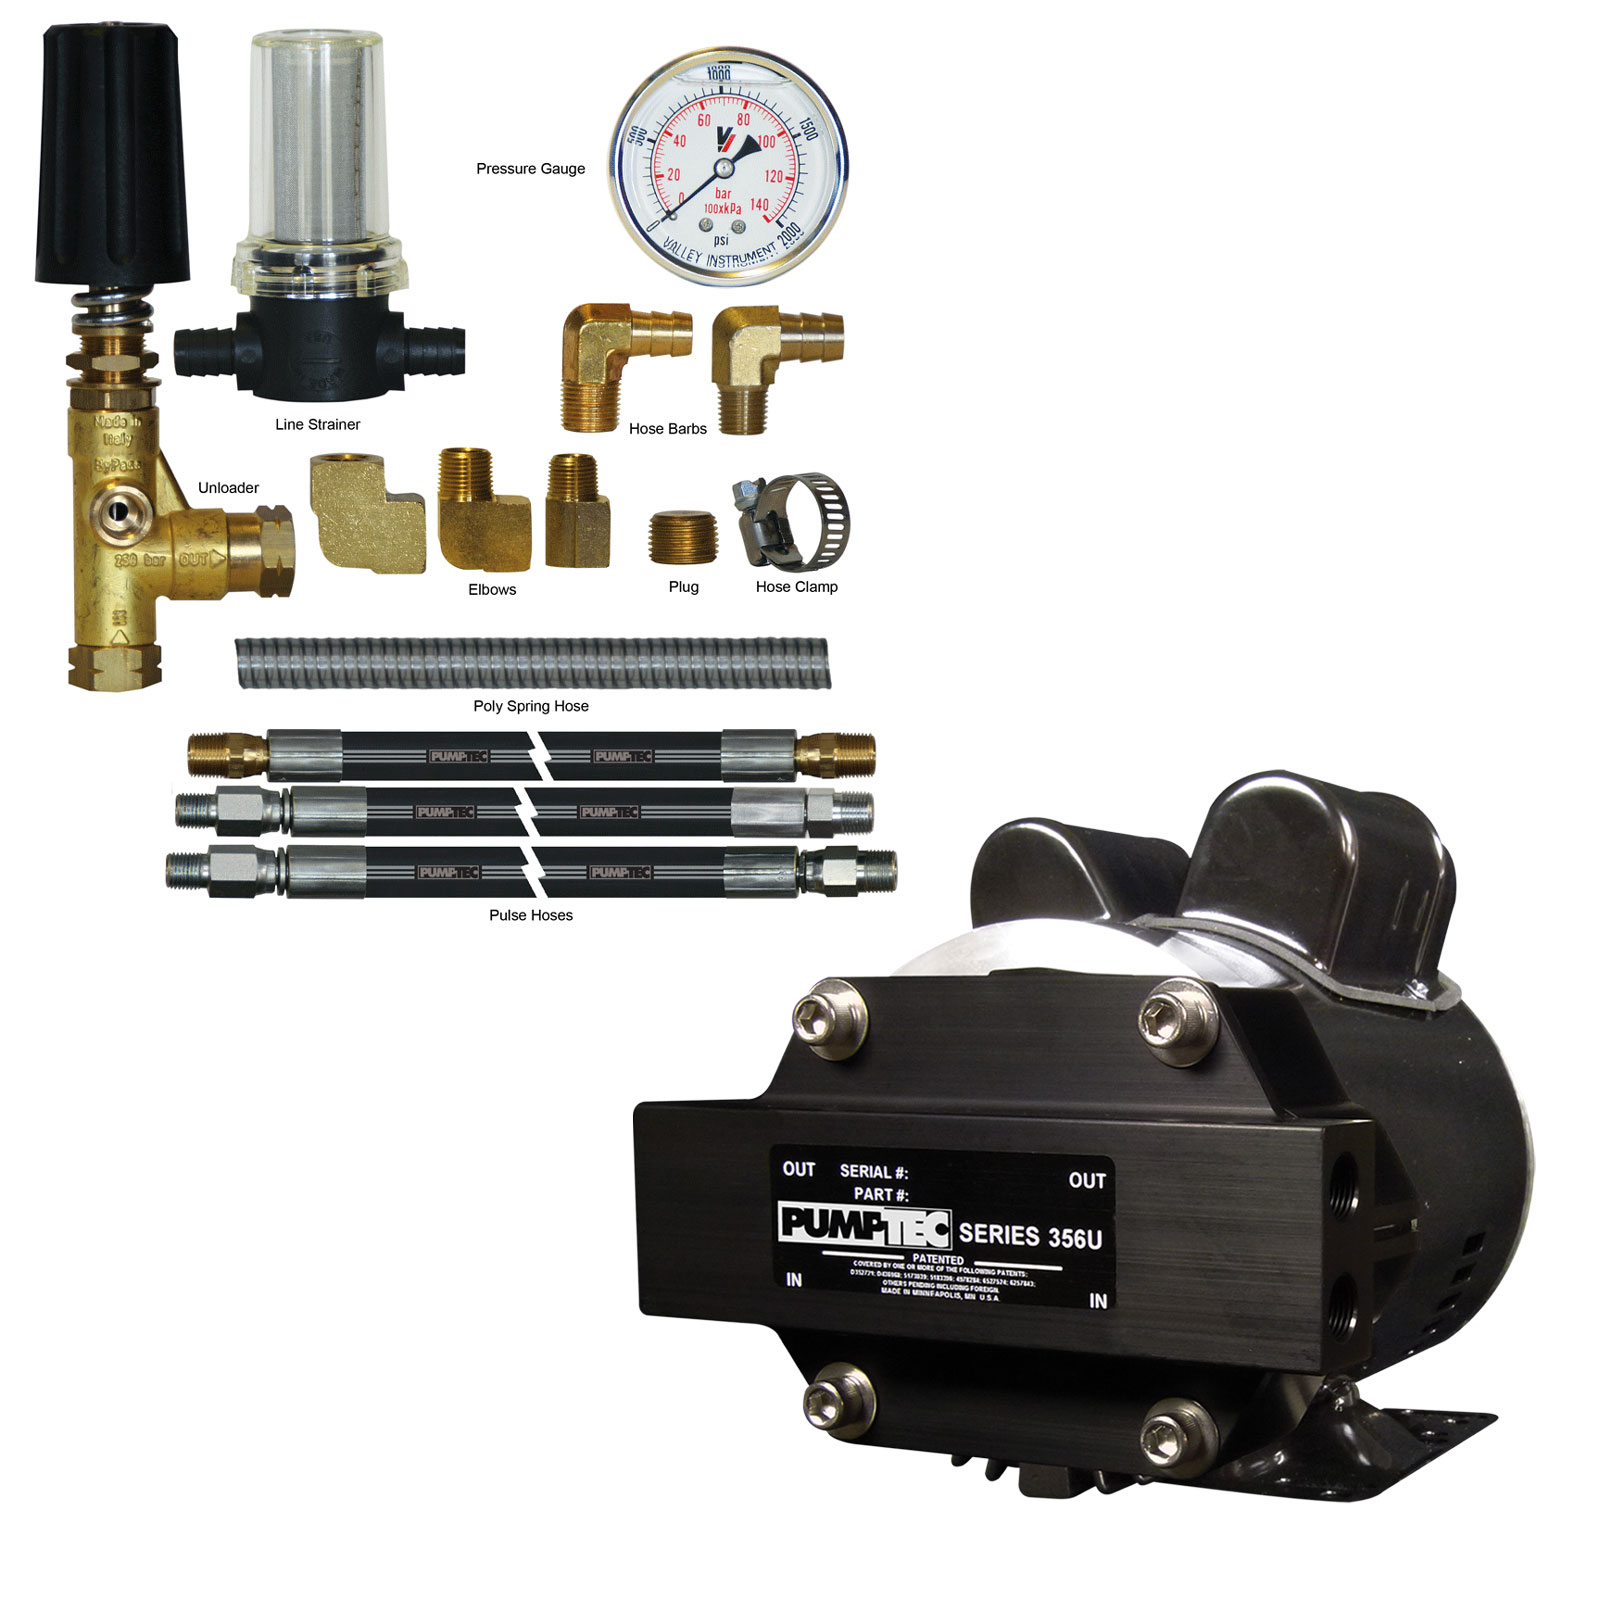 Pumptec NM5057 Tile Cleaning Pump Conversion Kit 1200psi 2.2Gpm 1609-2330 UPC 768724751607